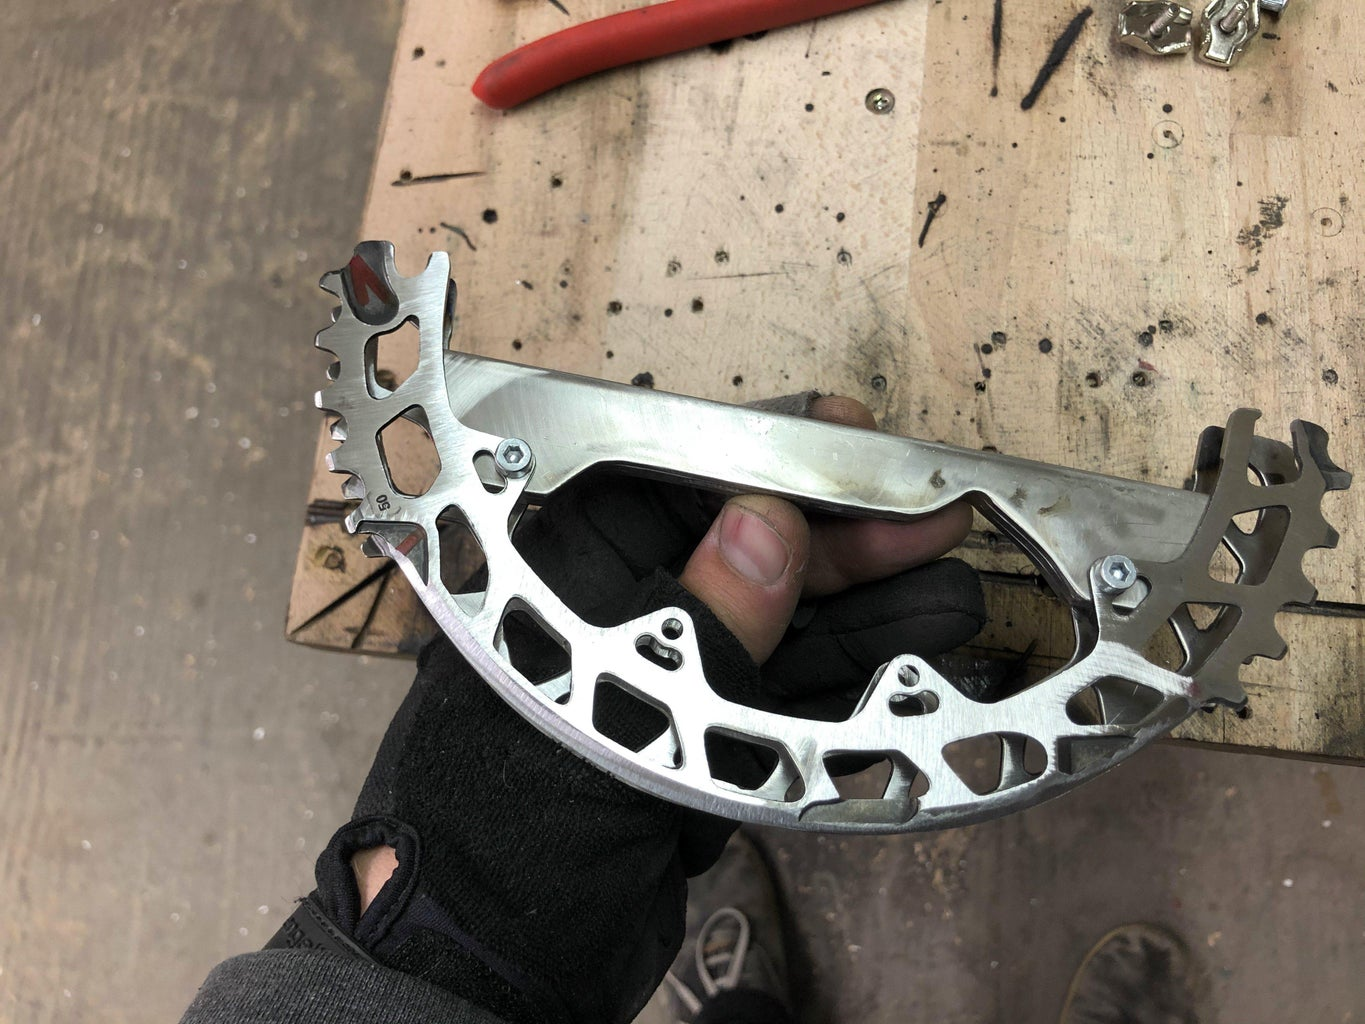 Crafting the Handle